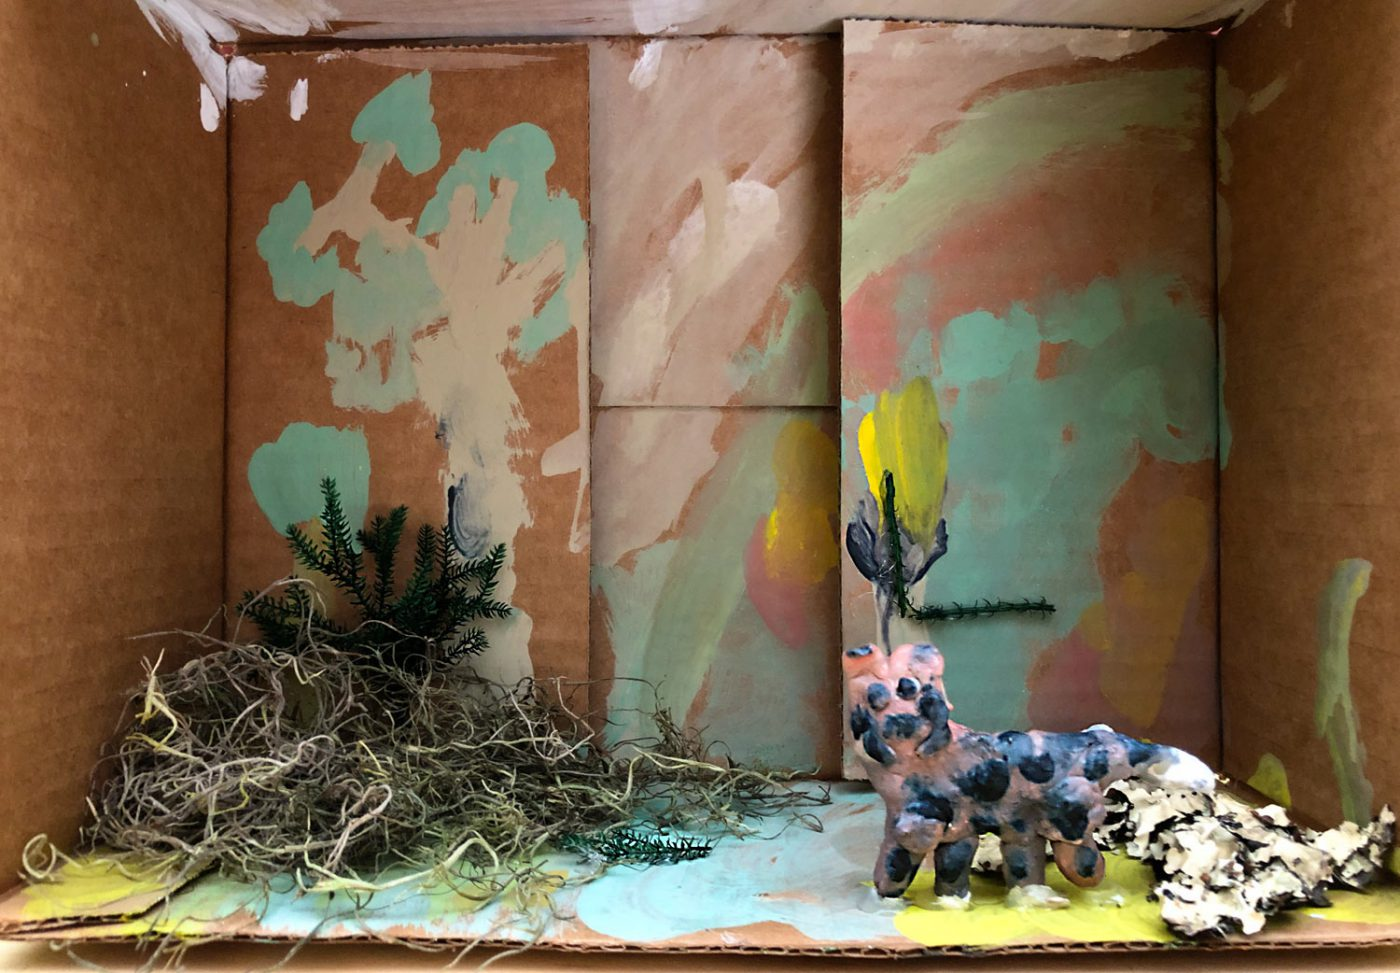 Cheetah diorama (Apr 19, 2019)